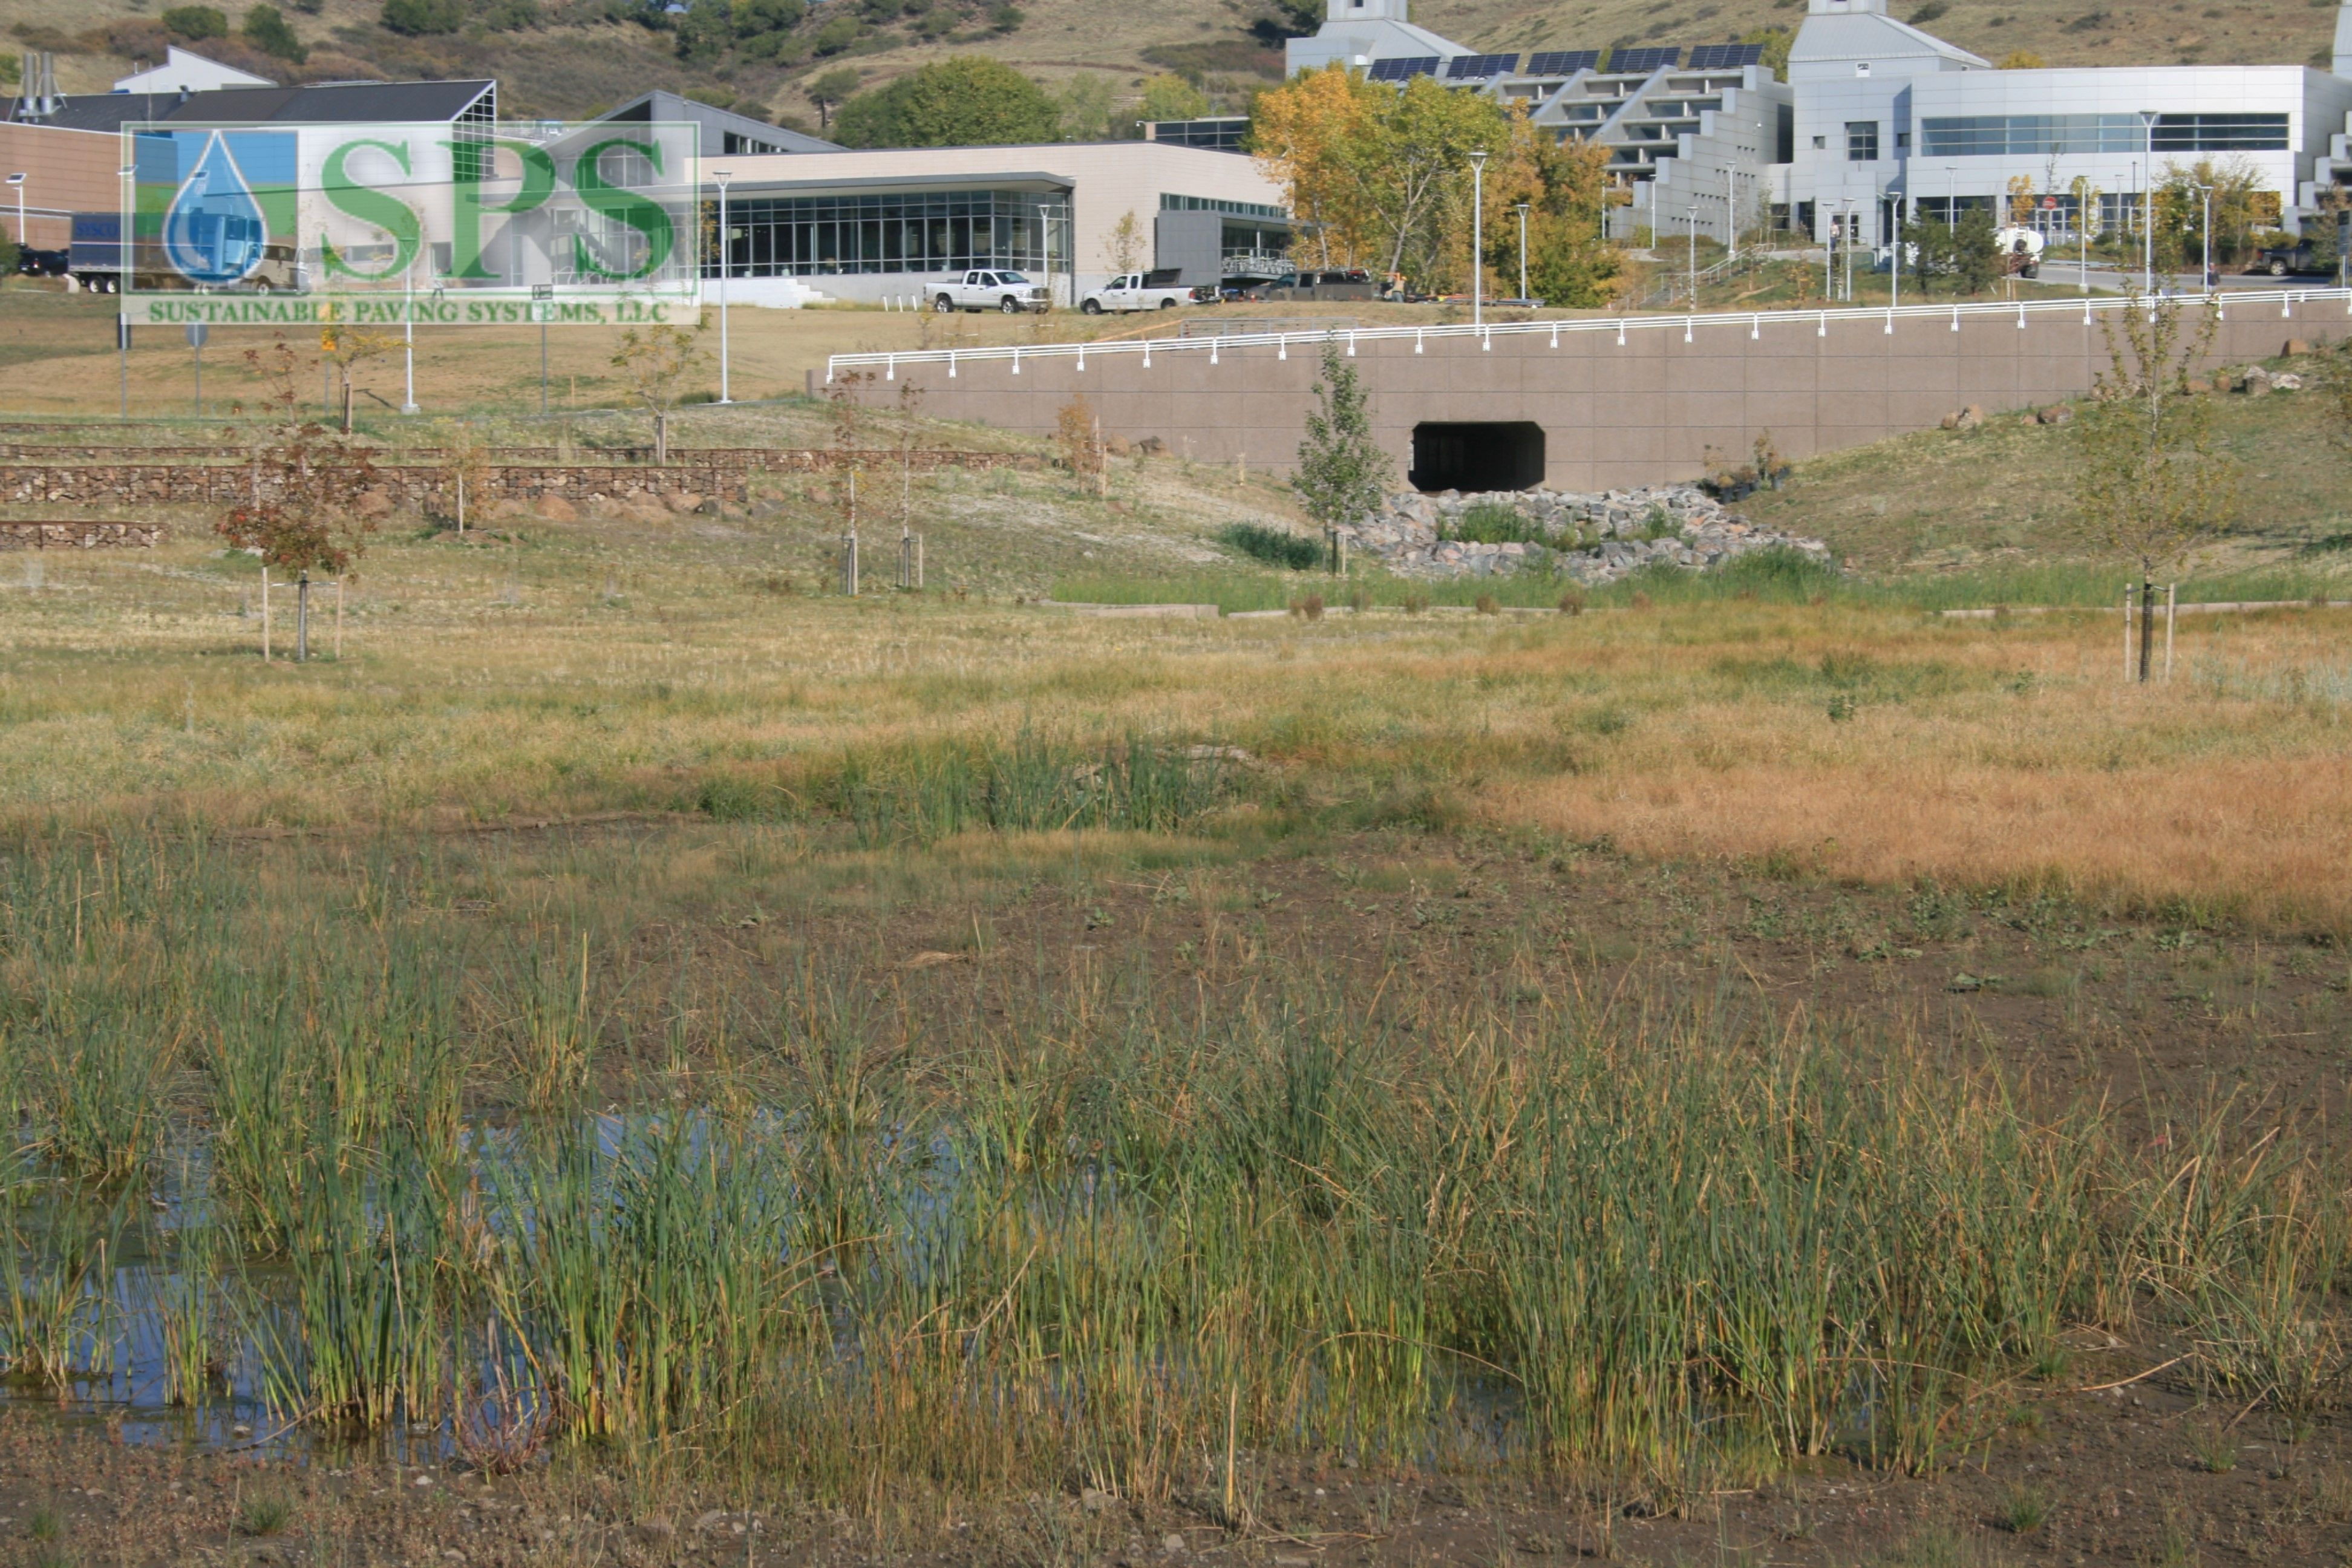 Grasscrete Partially Concealed System At Nrel Detention Pond_05